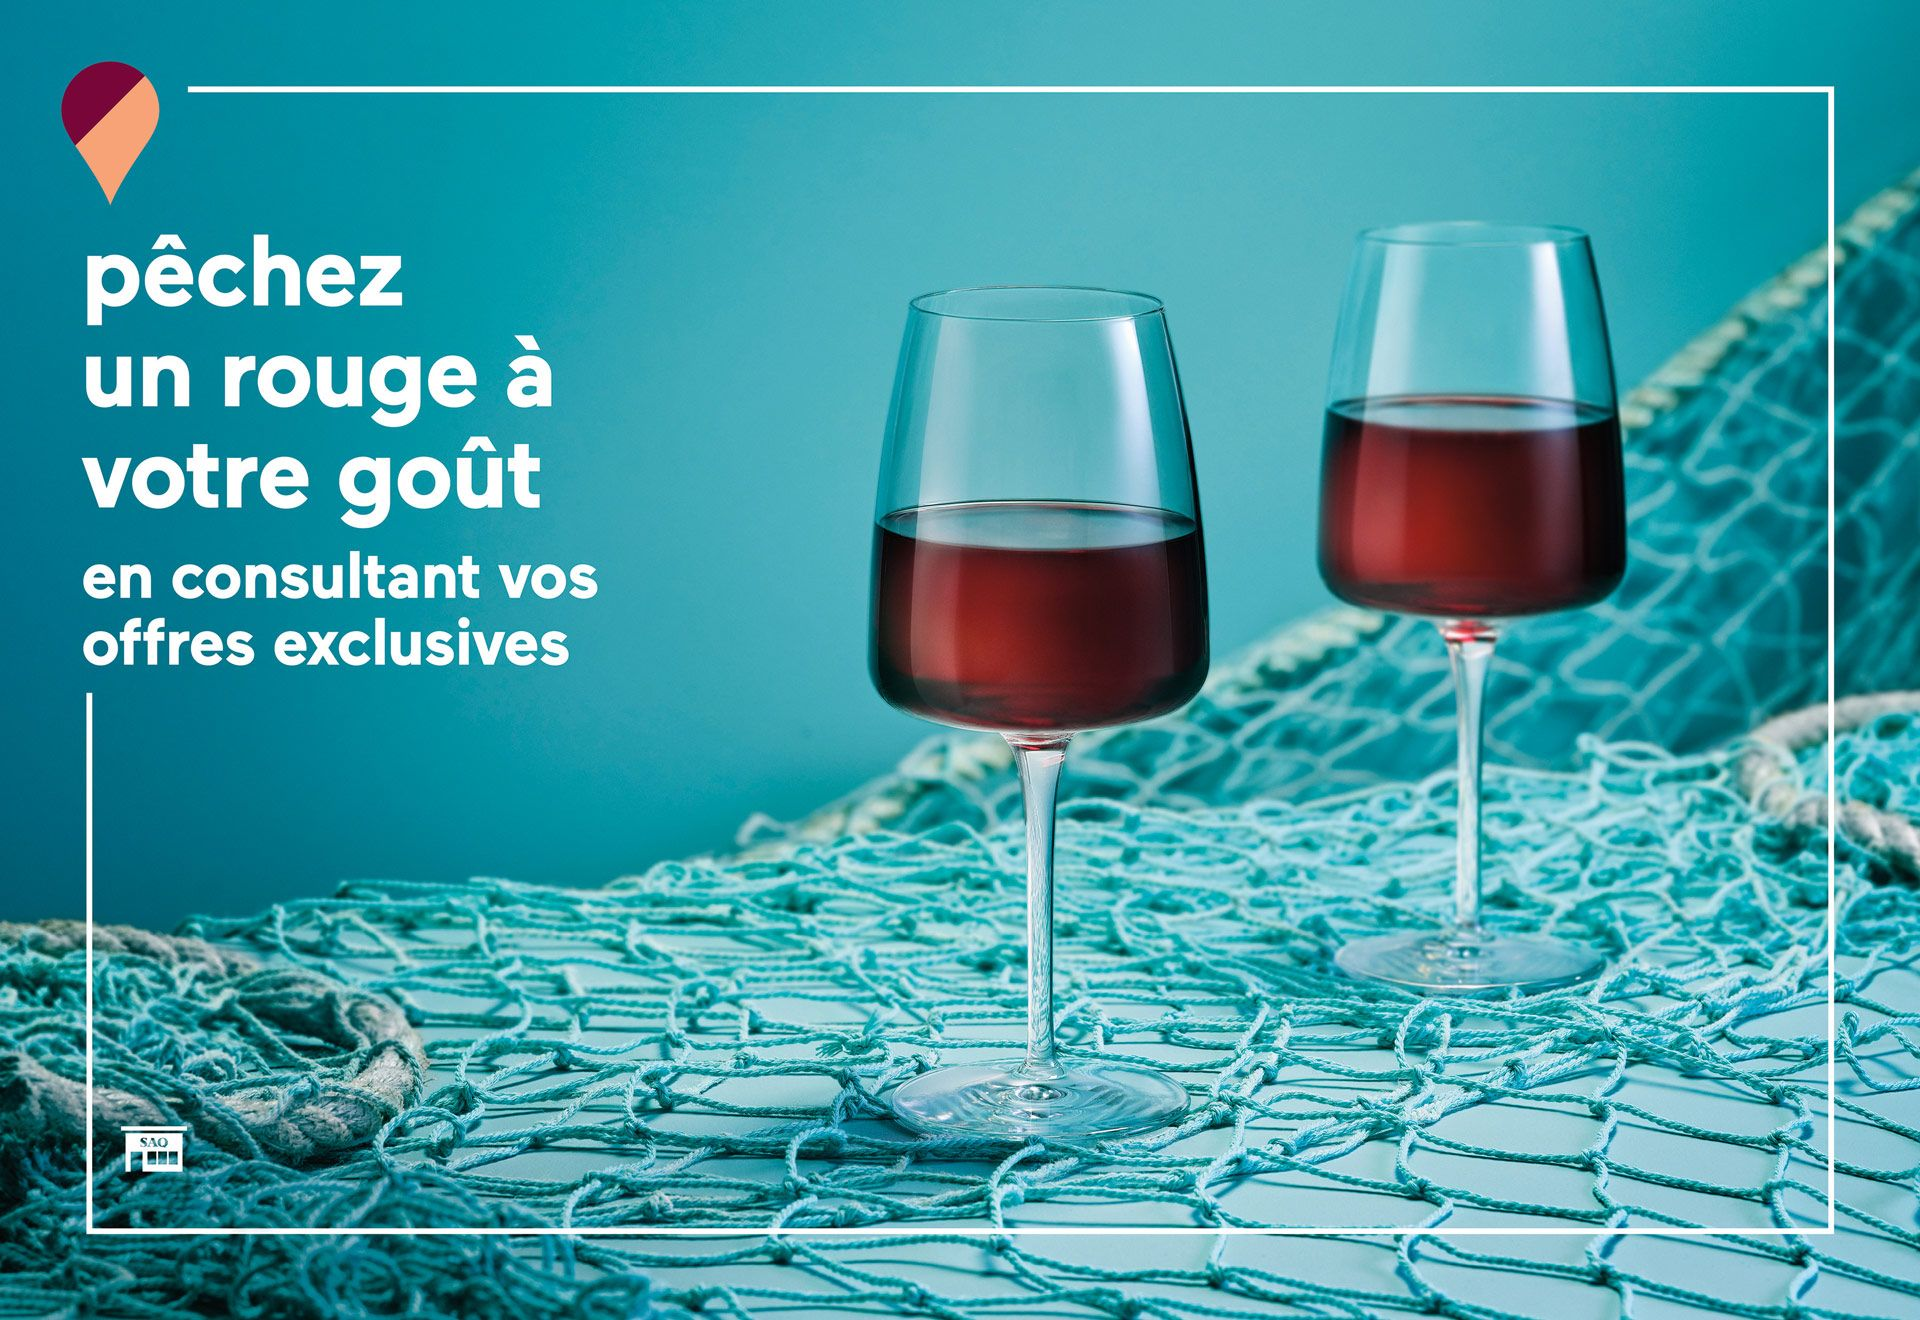 two glasses of red wine on blue table with fishing net photographed by Mathieu Levesque for the SAQ Make Inspired Choices campaign